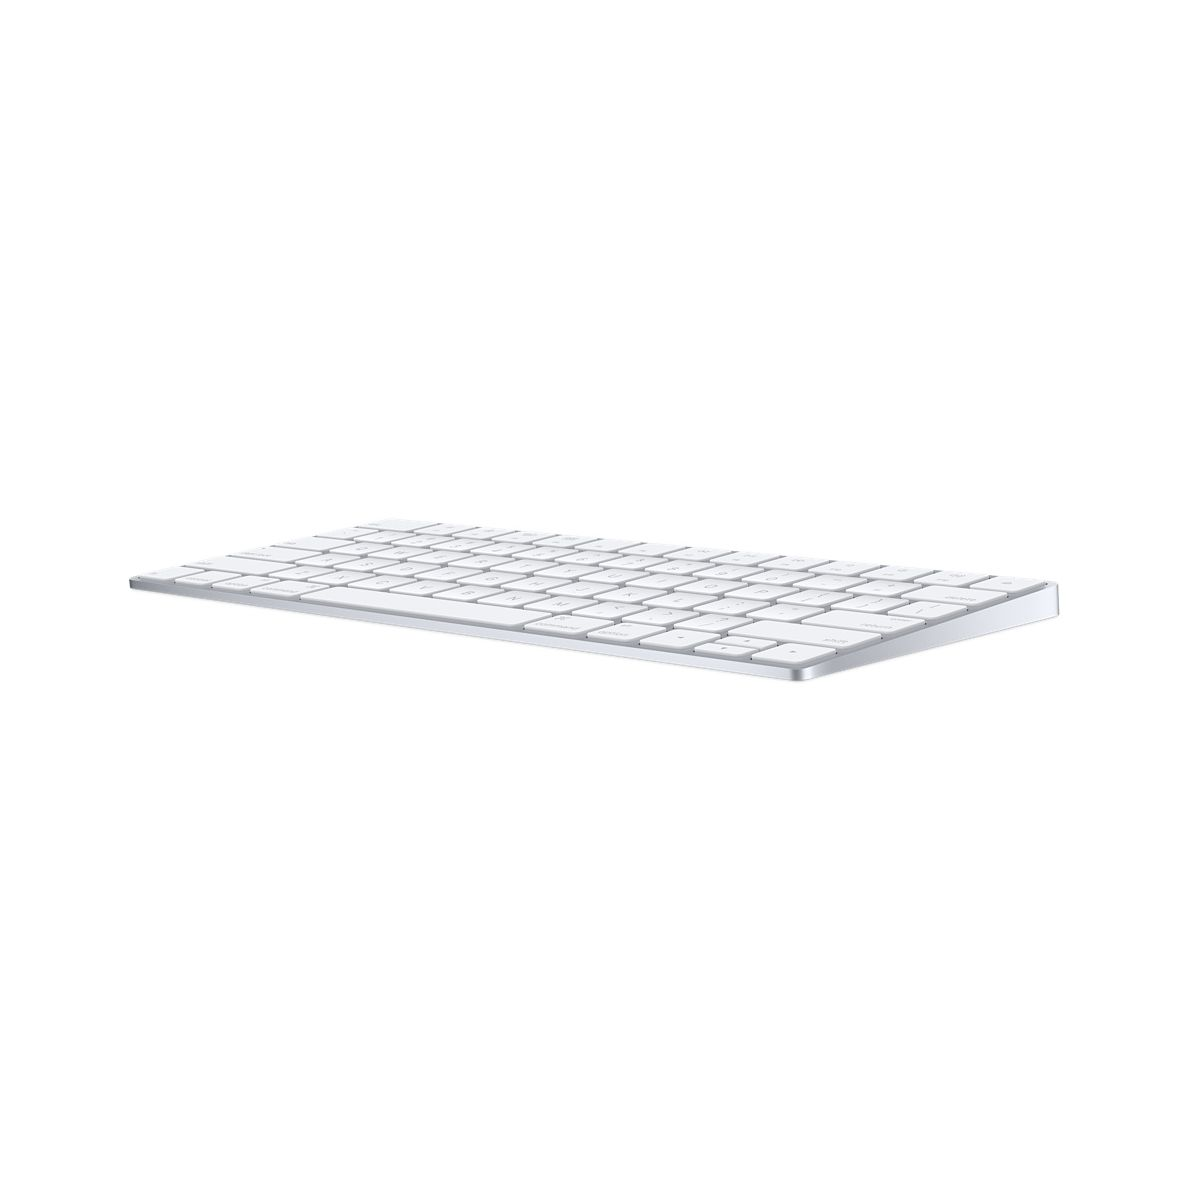 Clavier sans fil apple magic keyboard - livraison offerte : co...